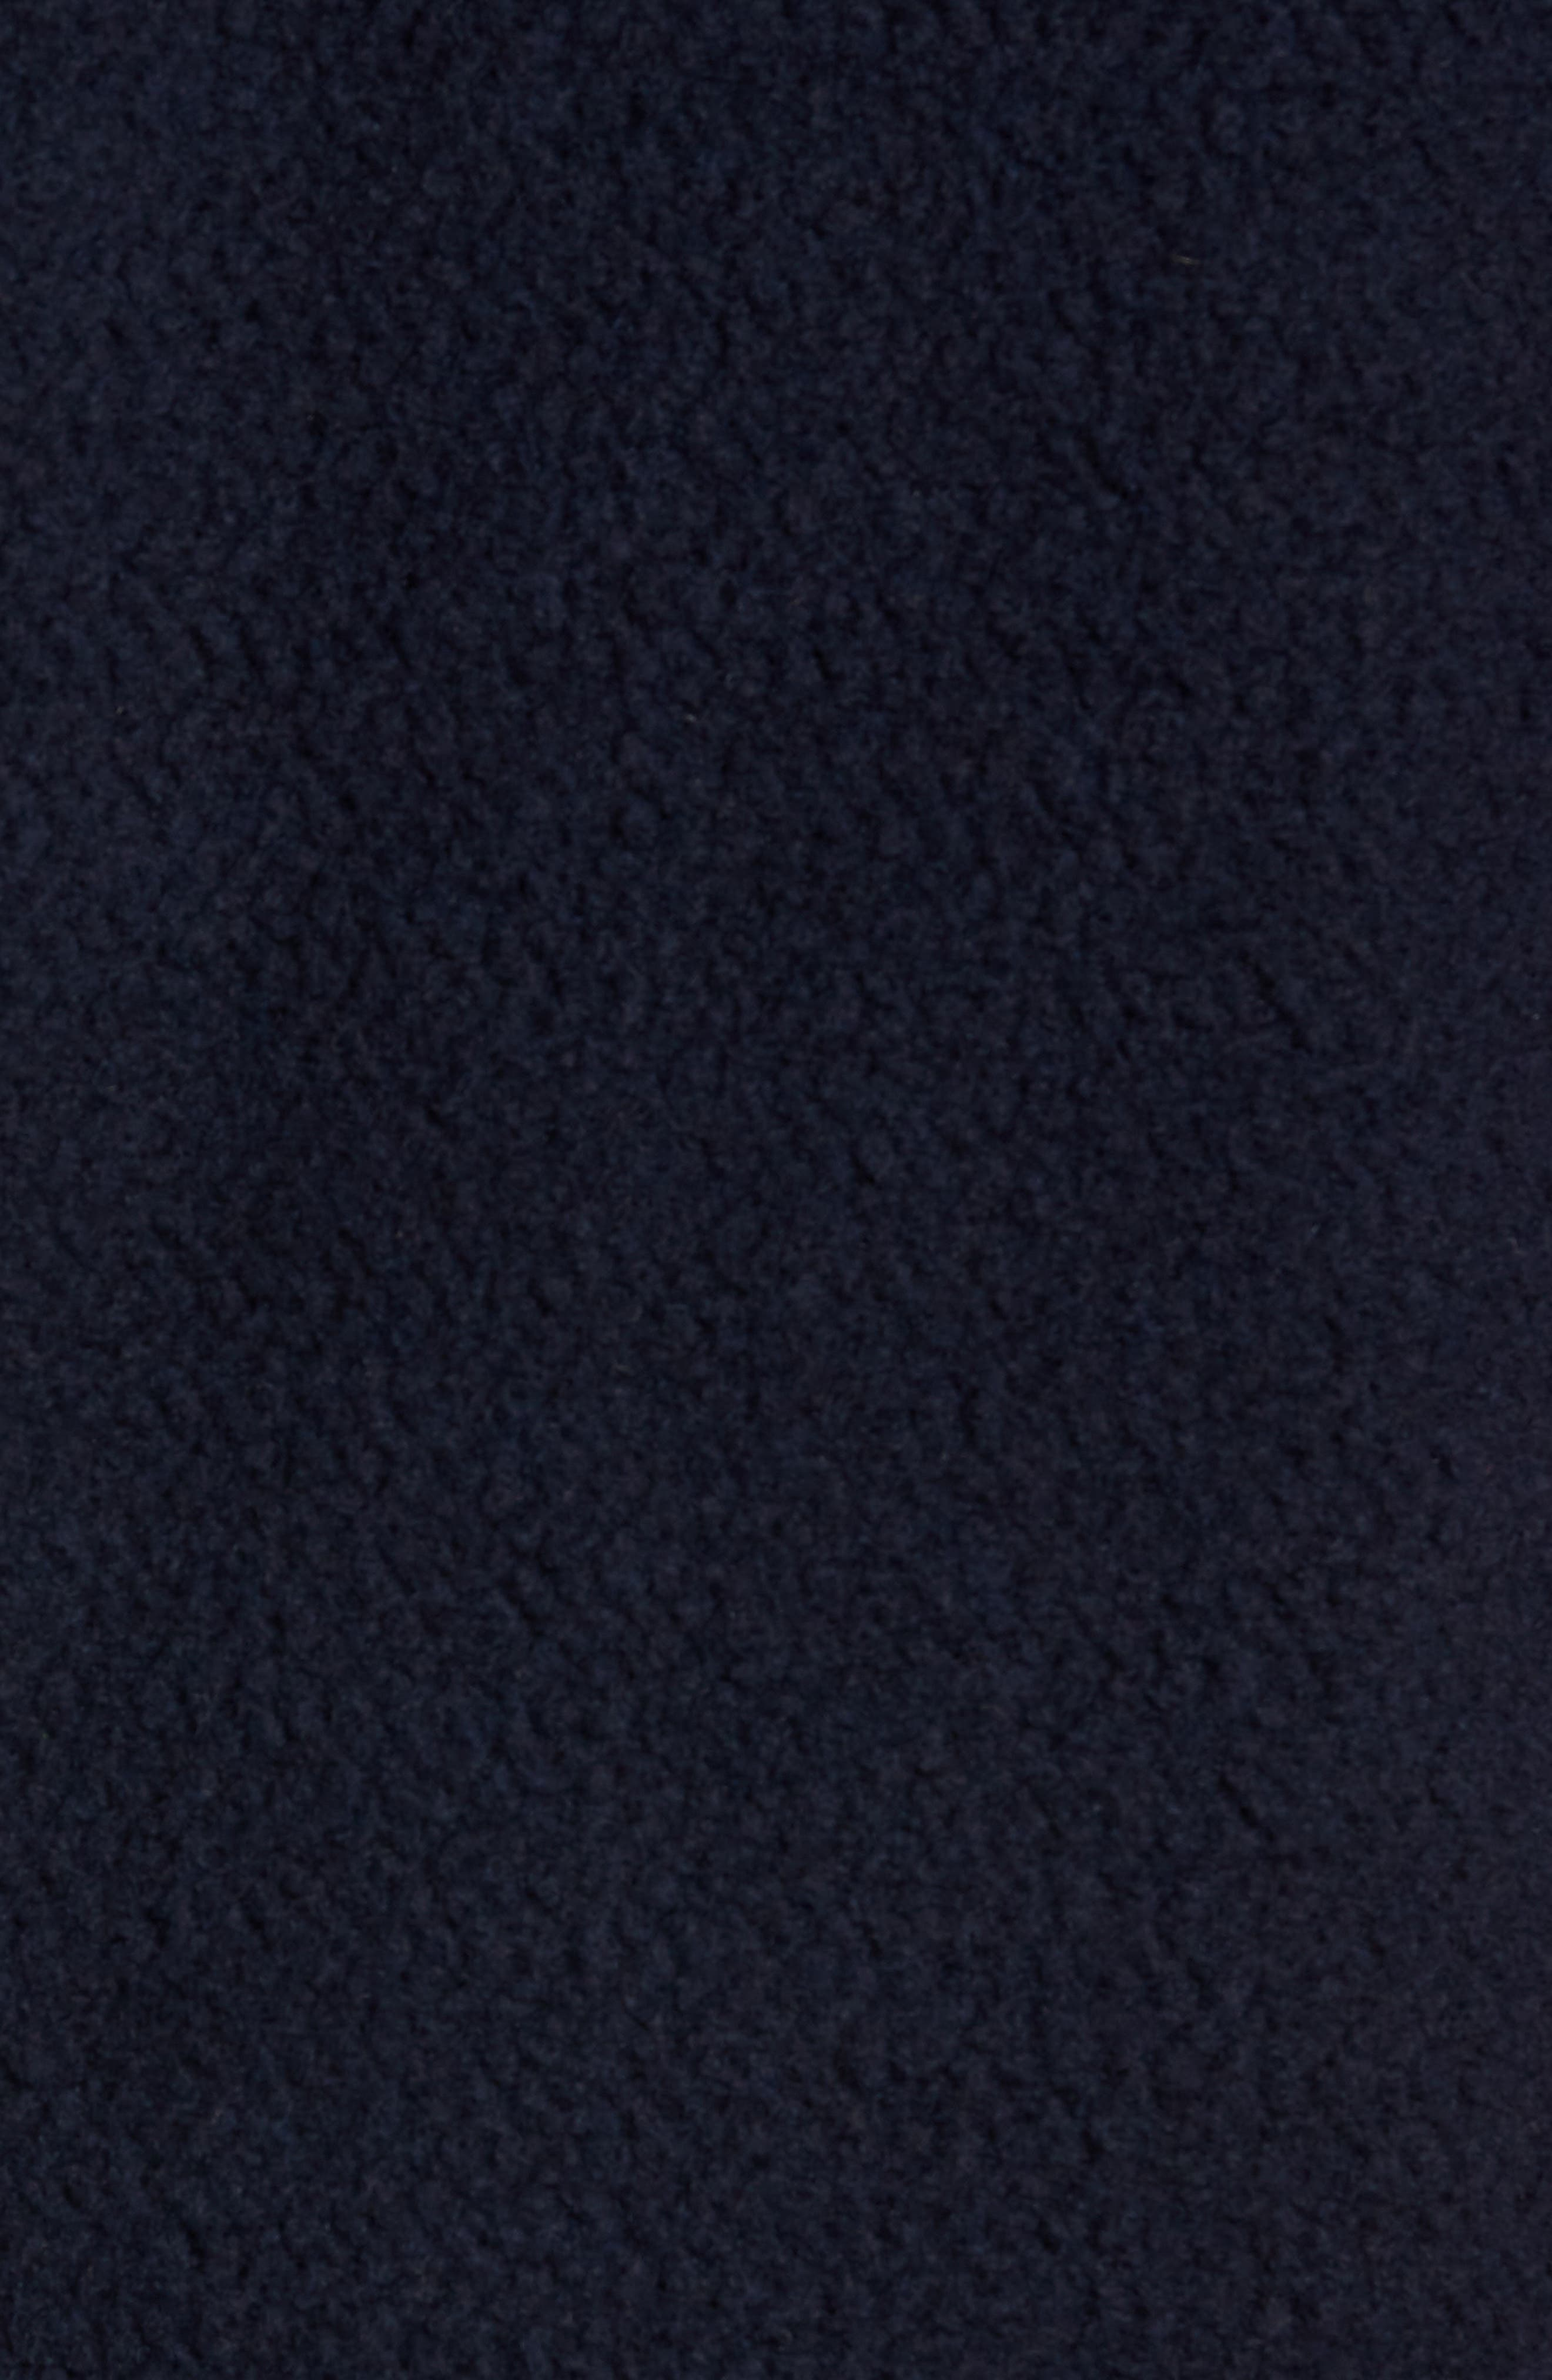 PATAGONIA,                             Woolyester Fleece Quarter Zip Pullover,                             Alternate thumbnail 5, color,                             CLASSIC NAVY